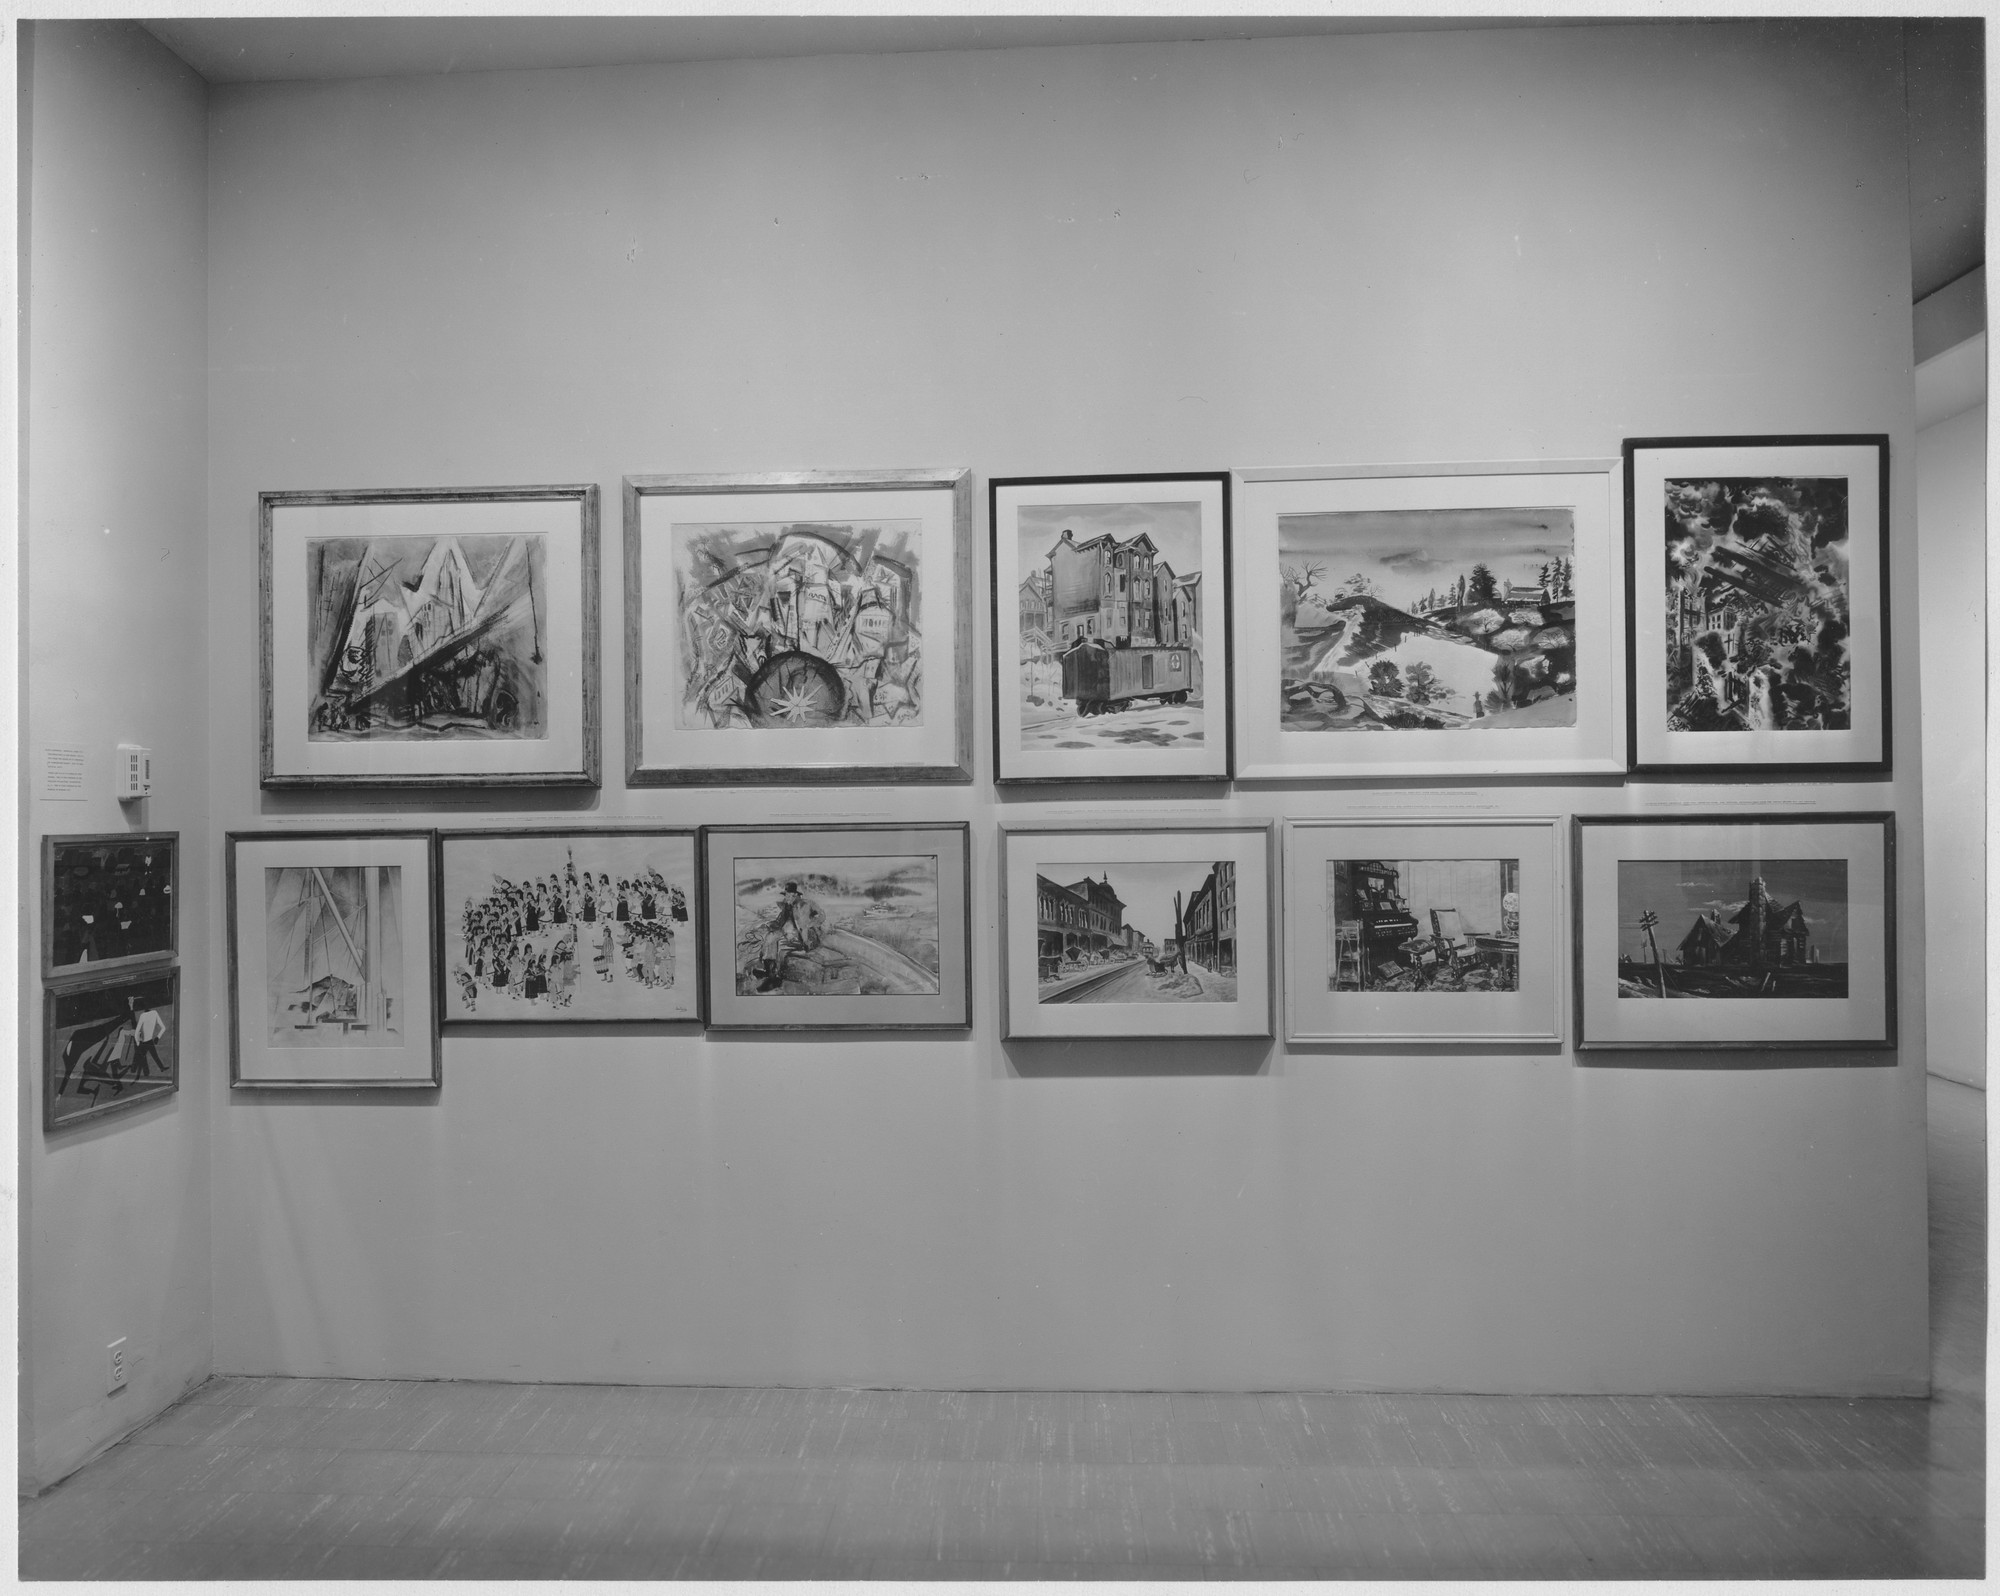 "Installation view of the exhibition, ""America Seen Between the Wars."" April 25, 1961–August 7, 1961. Photographic Archive. The Museum of Modern Art Archives, New York. IN684.1. Photograph by Soichi Sunami."